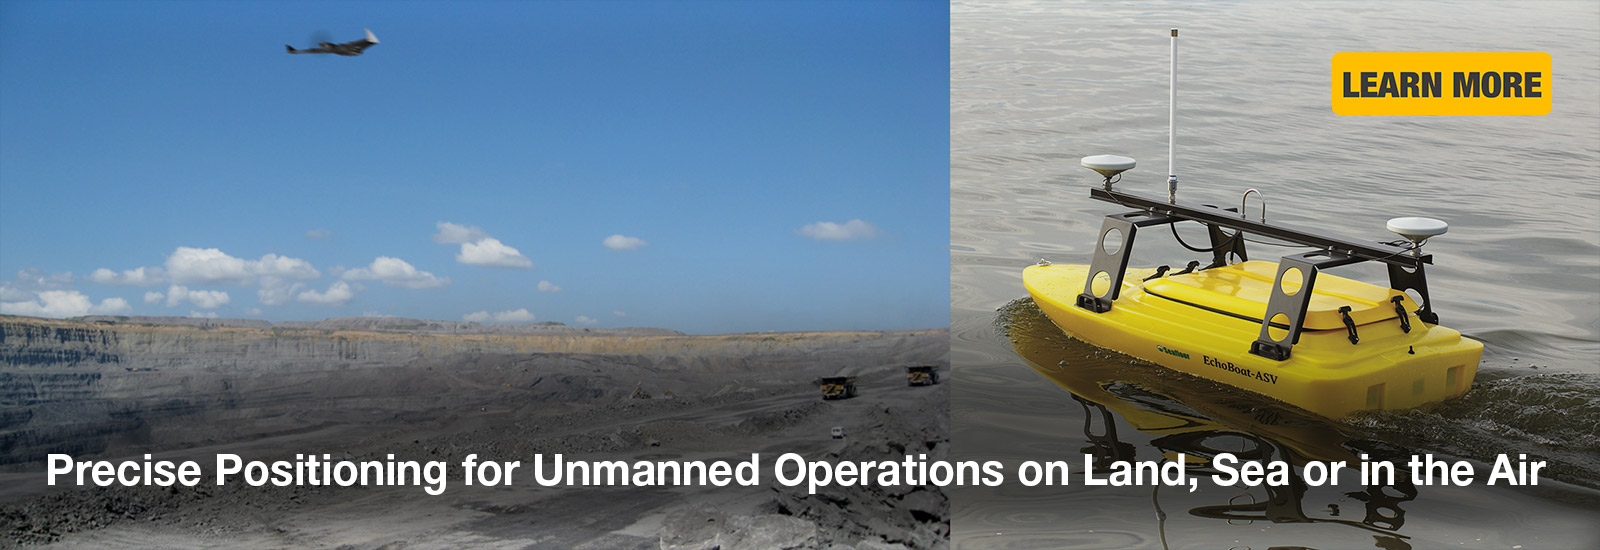 Precise Positioning for Unmanned Operations on Land, Sea and in the Air